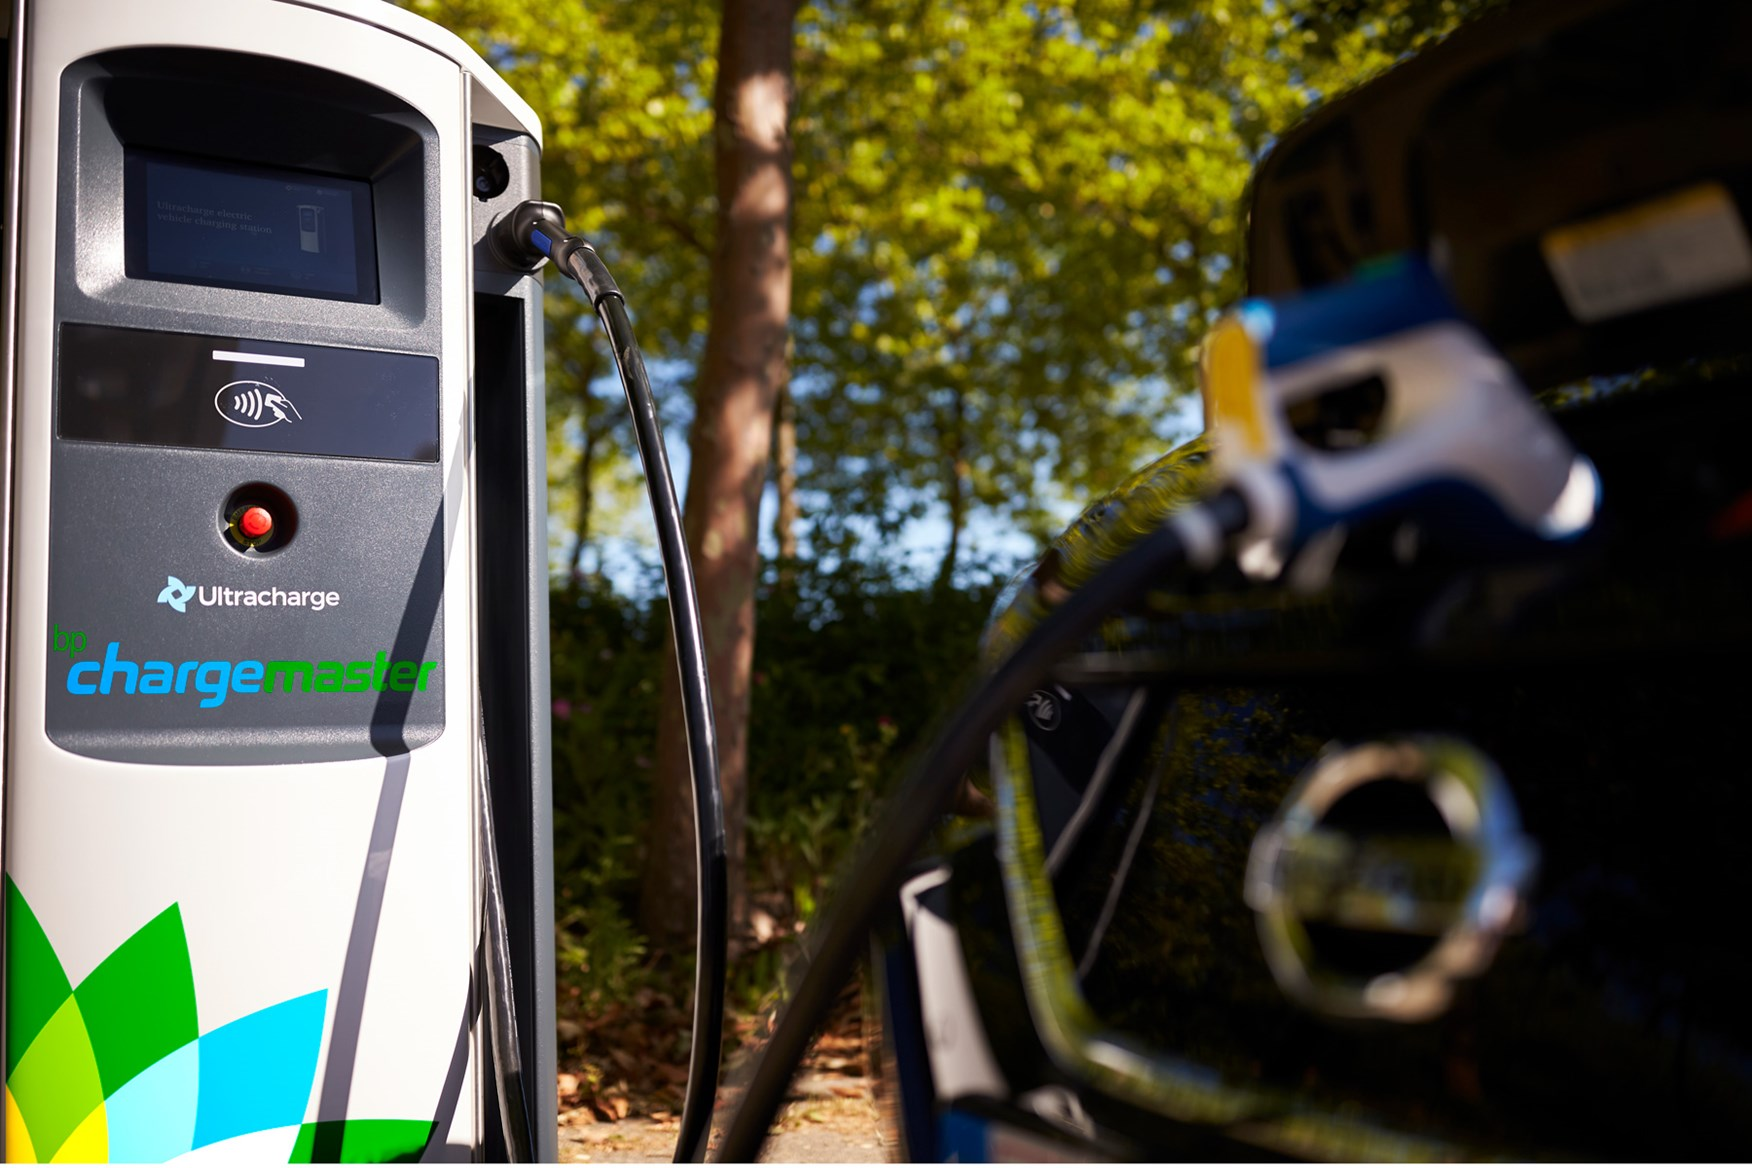 BP Chargemaster to install fast and ultra-fast chargepoints